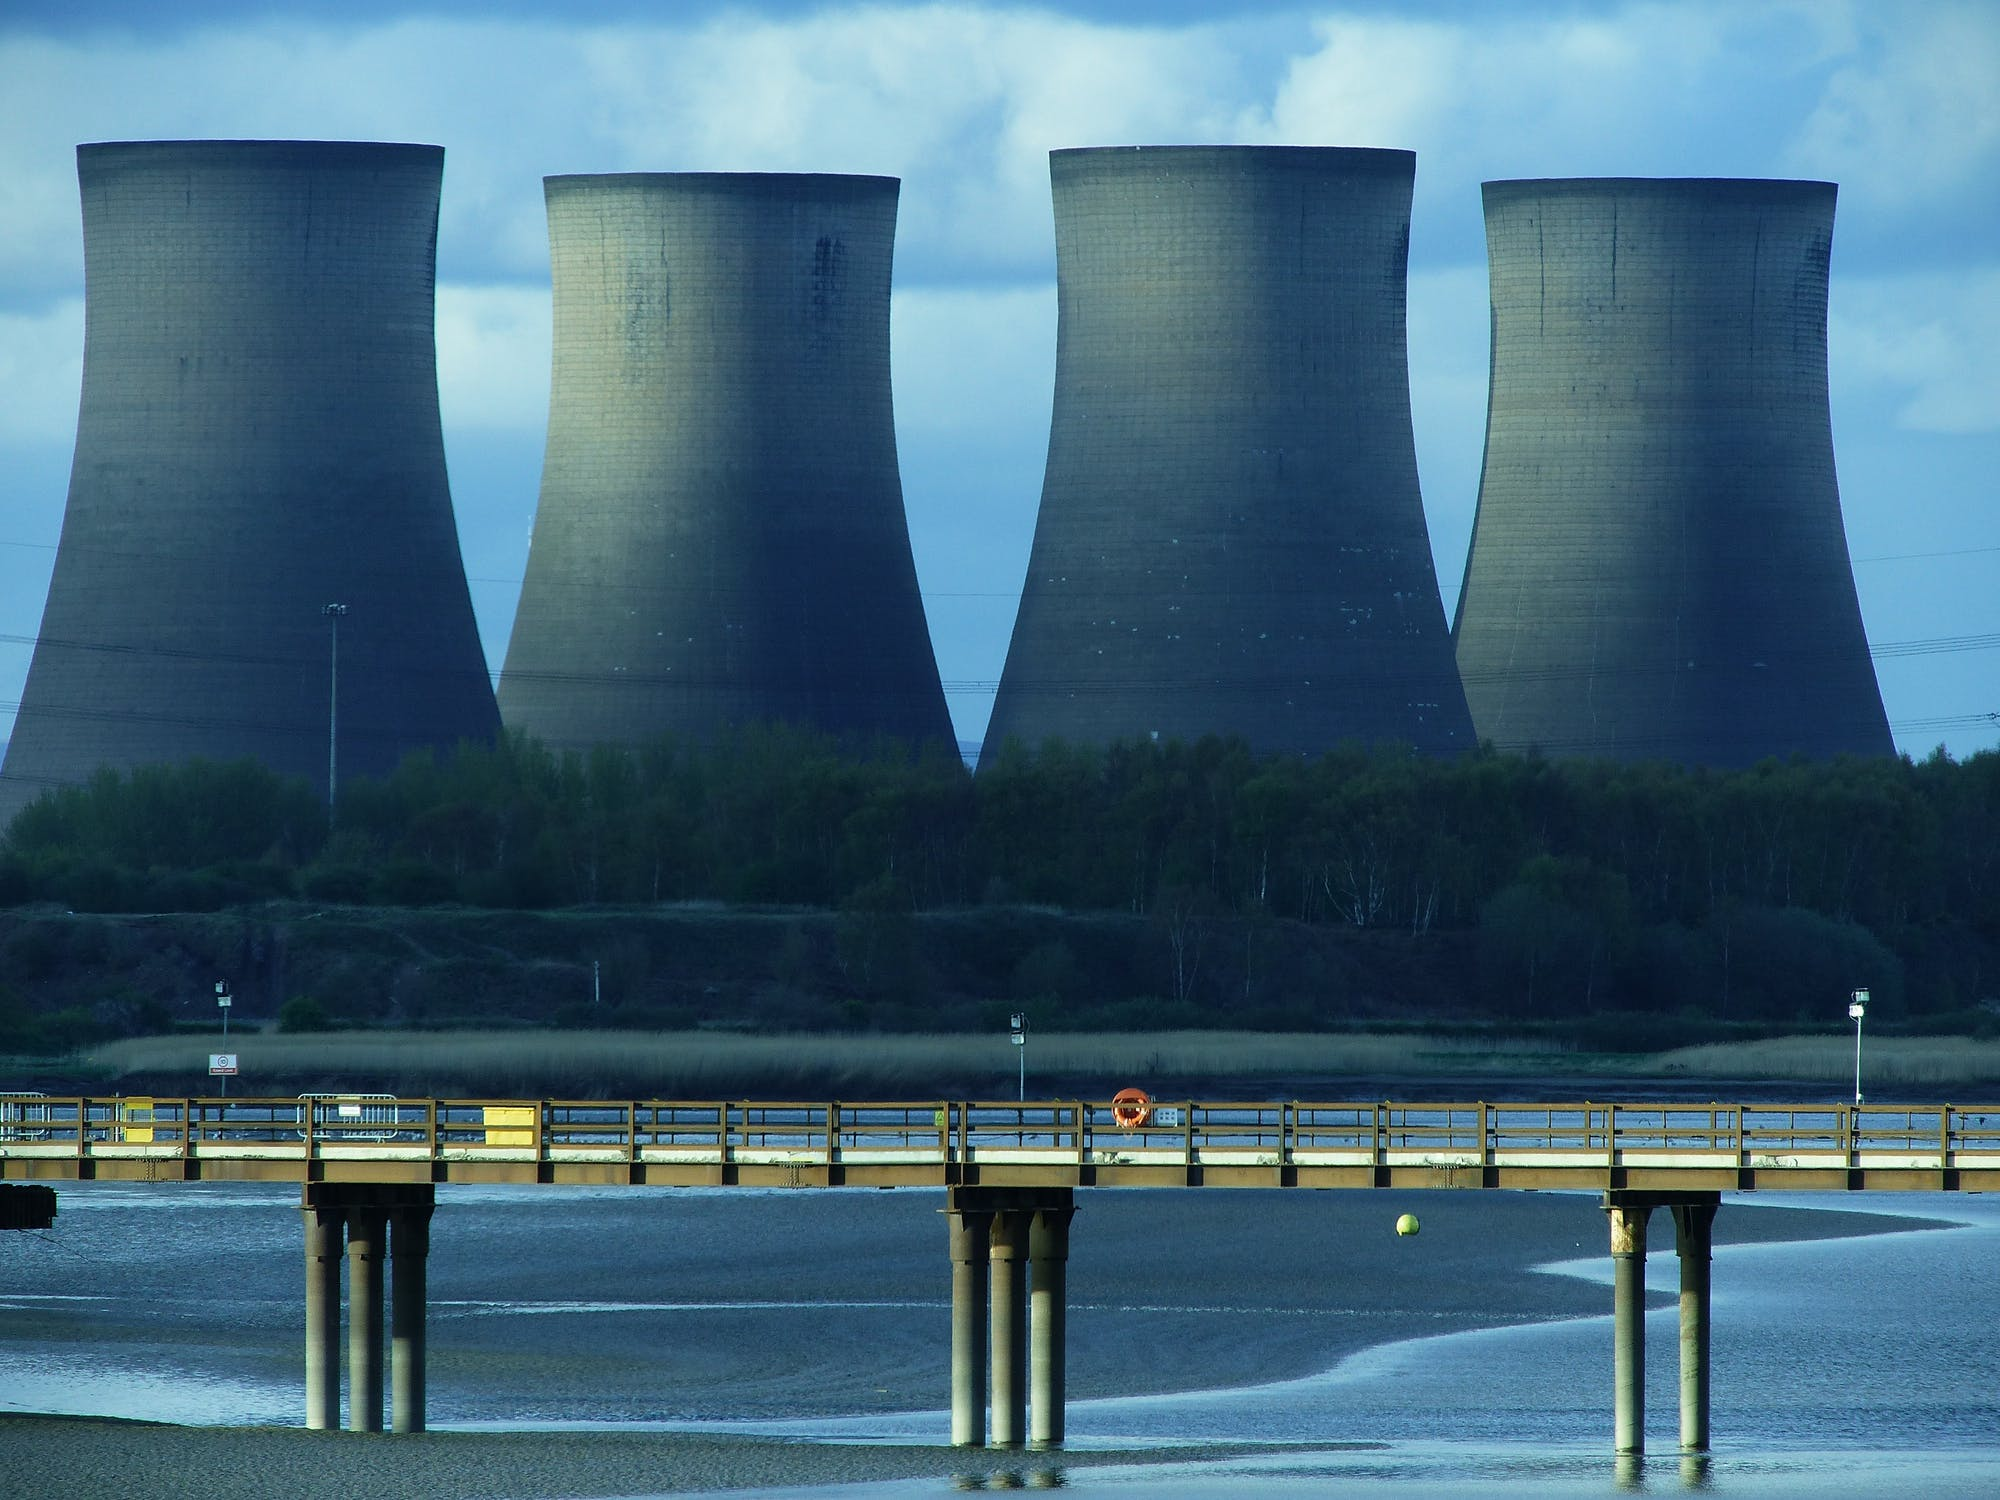 cooling-tower-power-plant-energy-industry-162646.jpeg